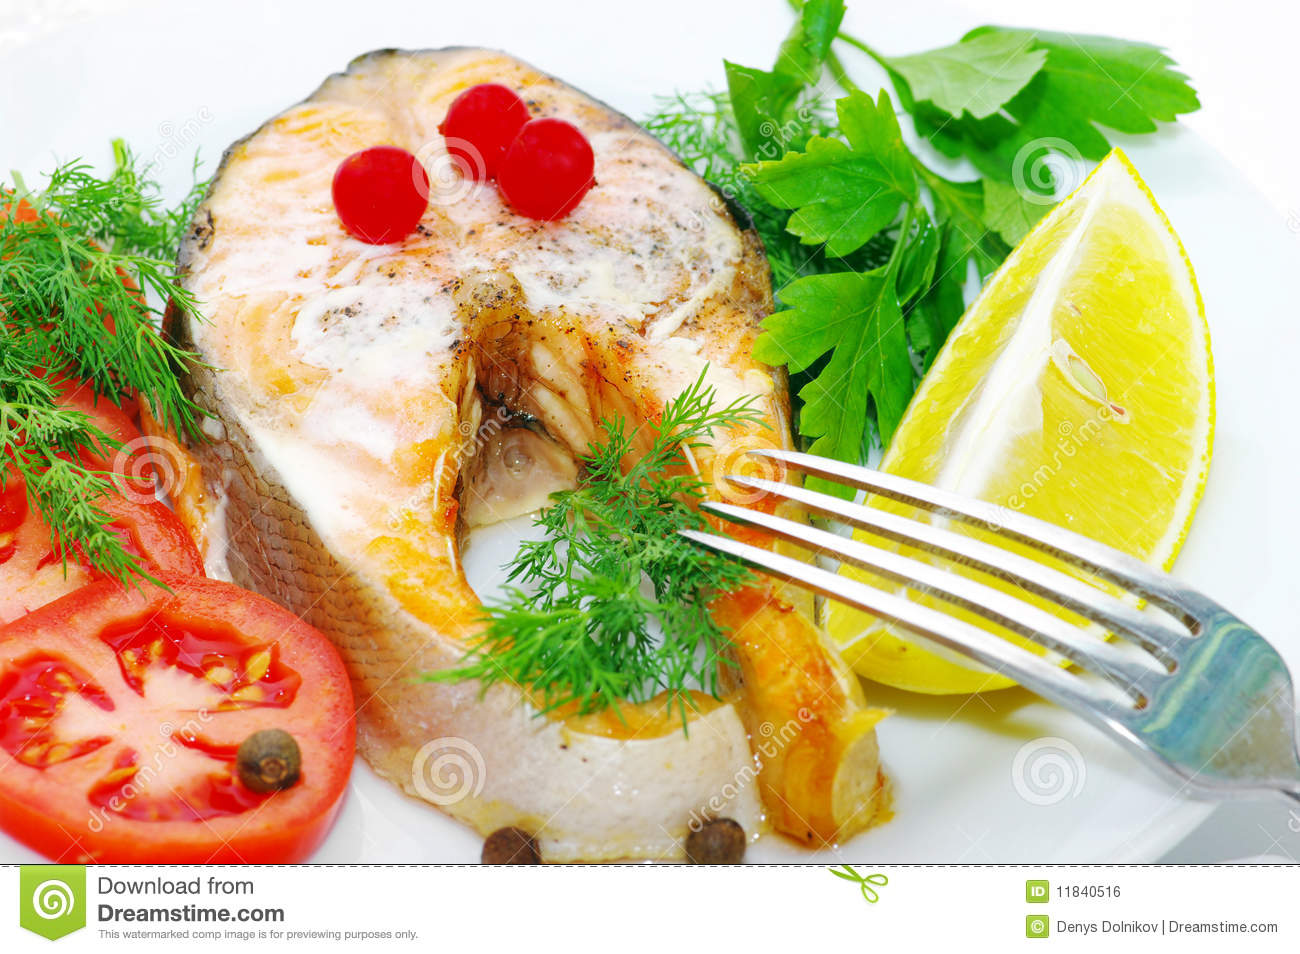 Grilled fish with vegetables royalty free stock image for Fish with vegetables